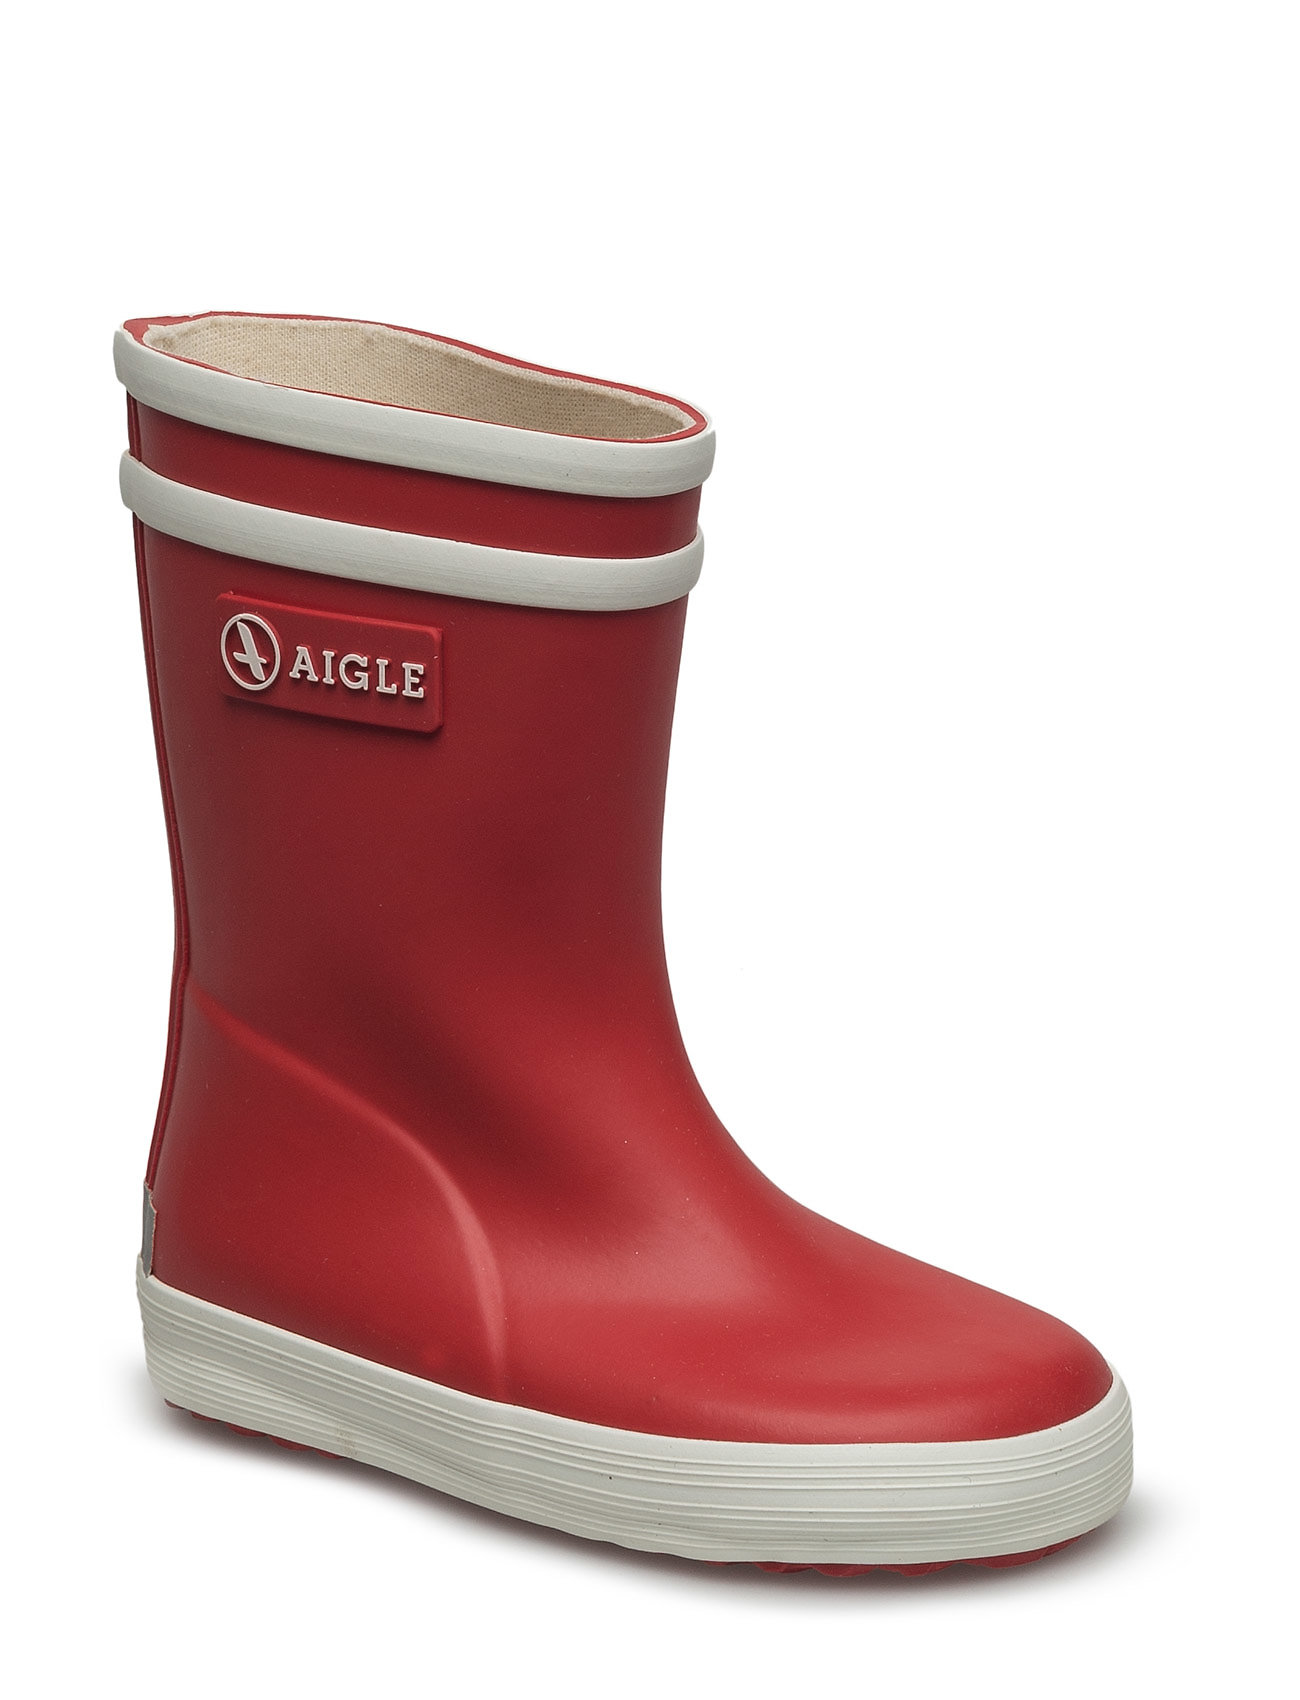 Baby flac rouge new fra aigle fra boozt.com dk